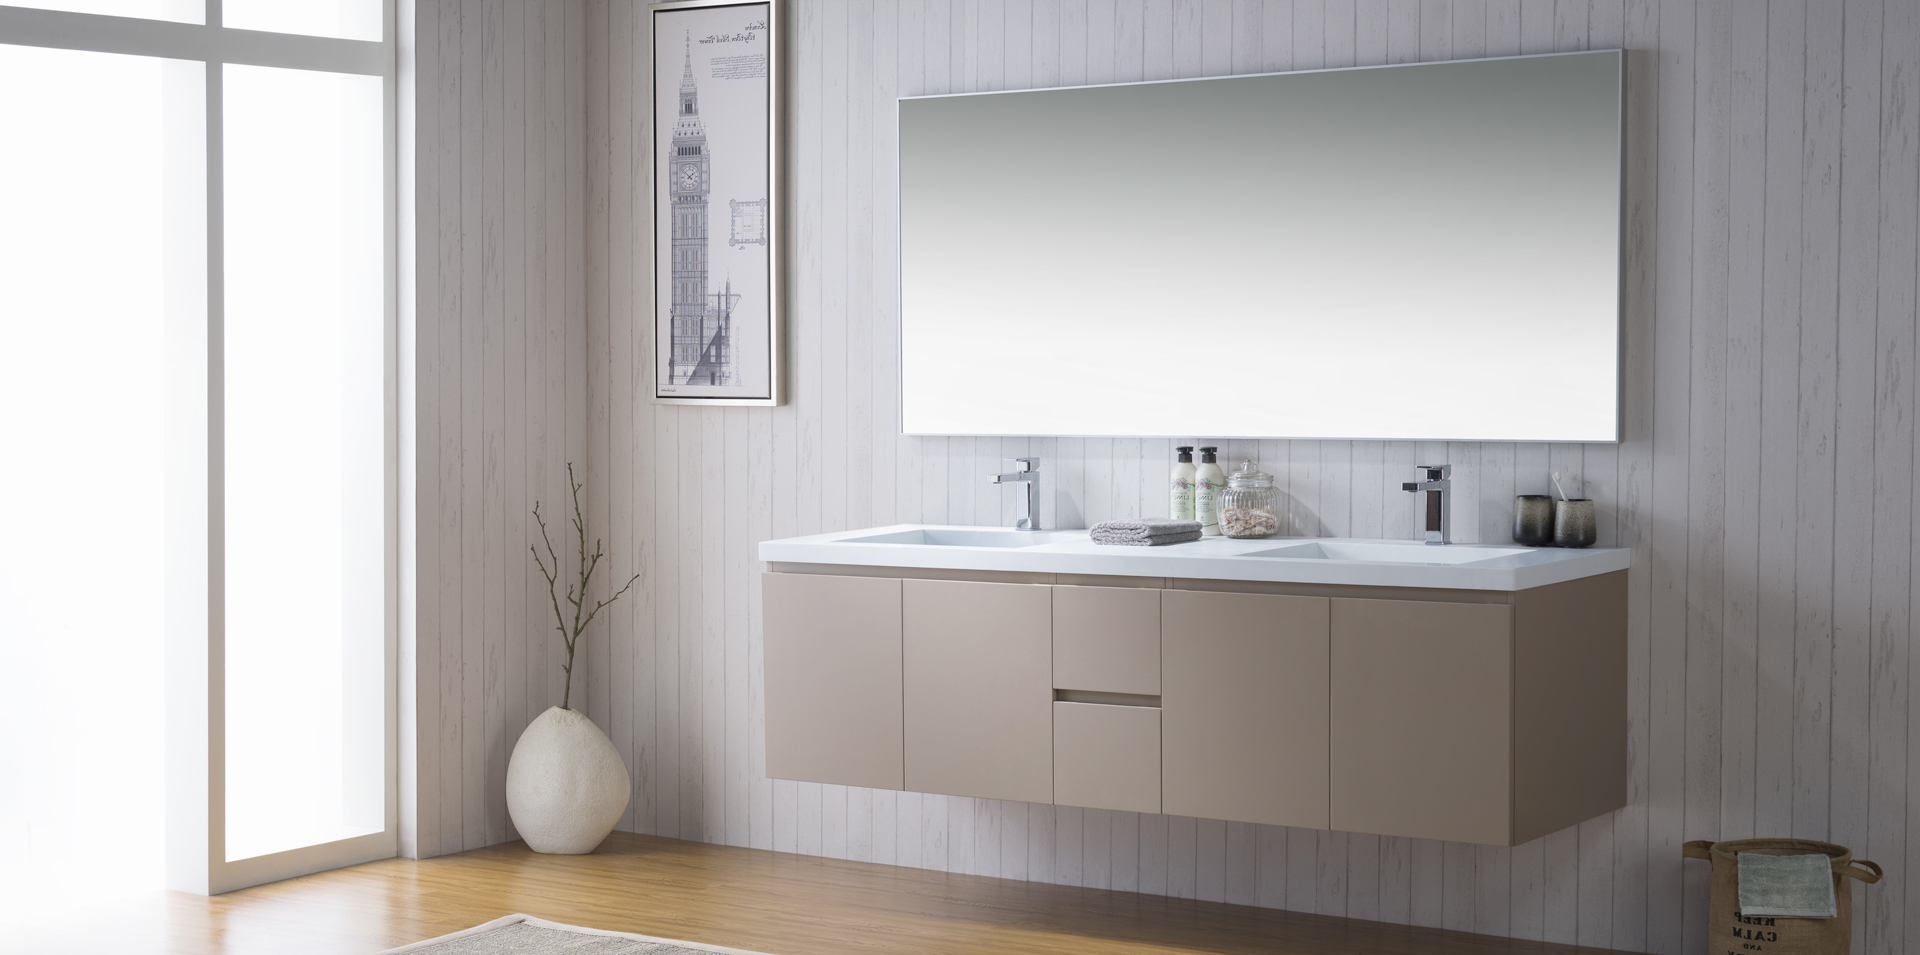 Modern Bathroom Vanities Cabinets Faucets Bathroom Place Miami - Factory outlet bathroom vanities